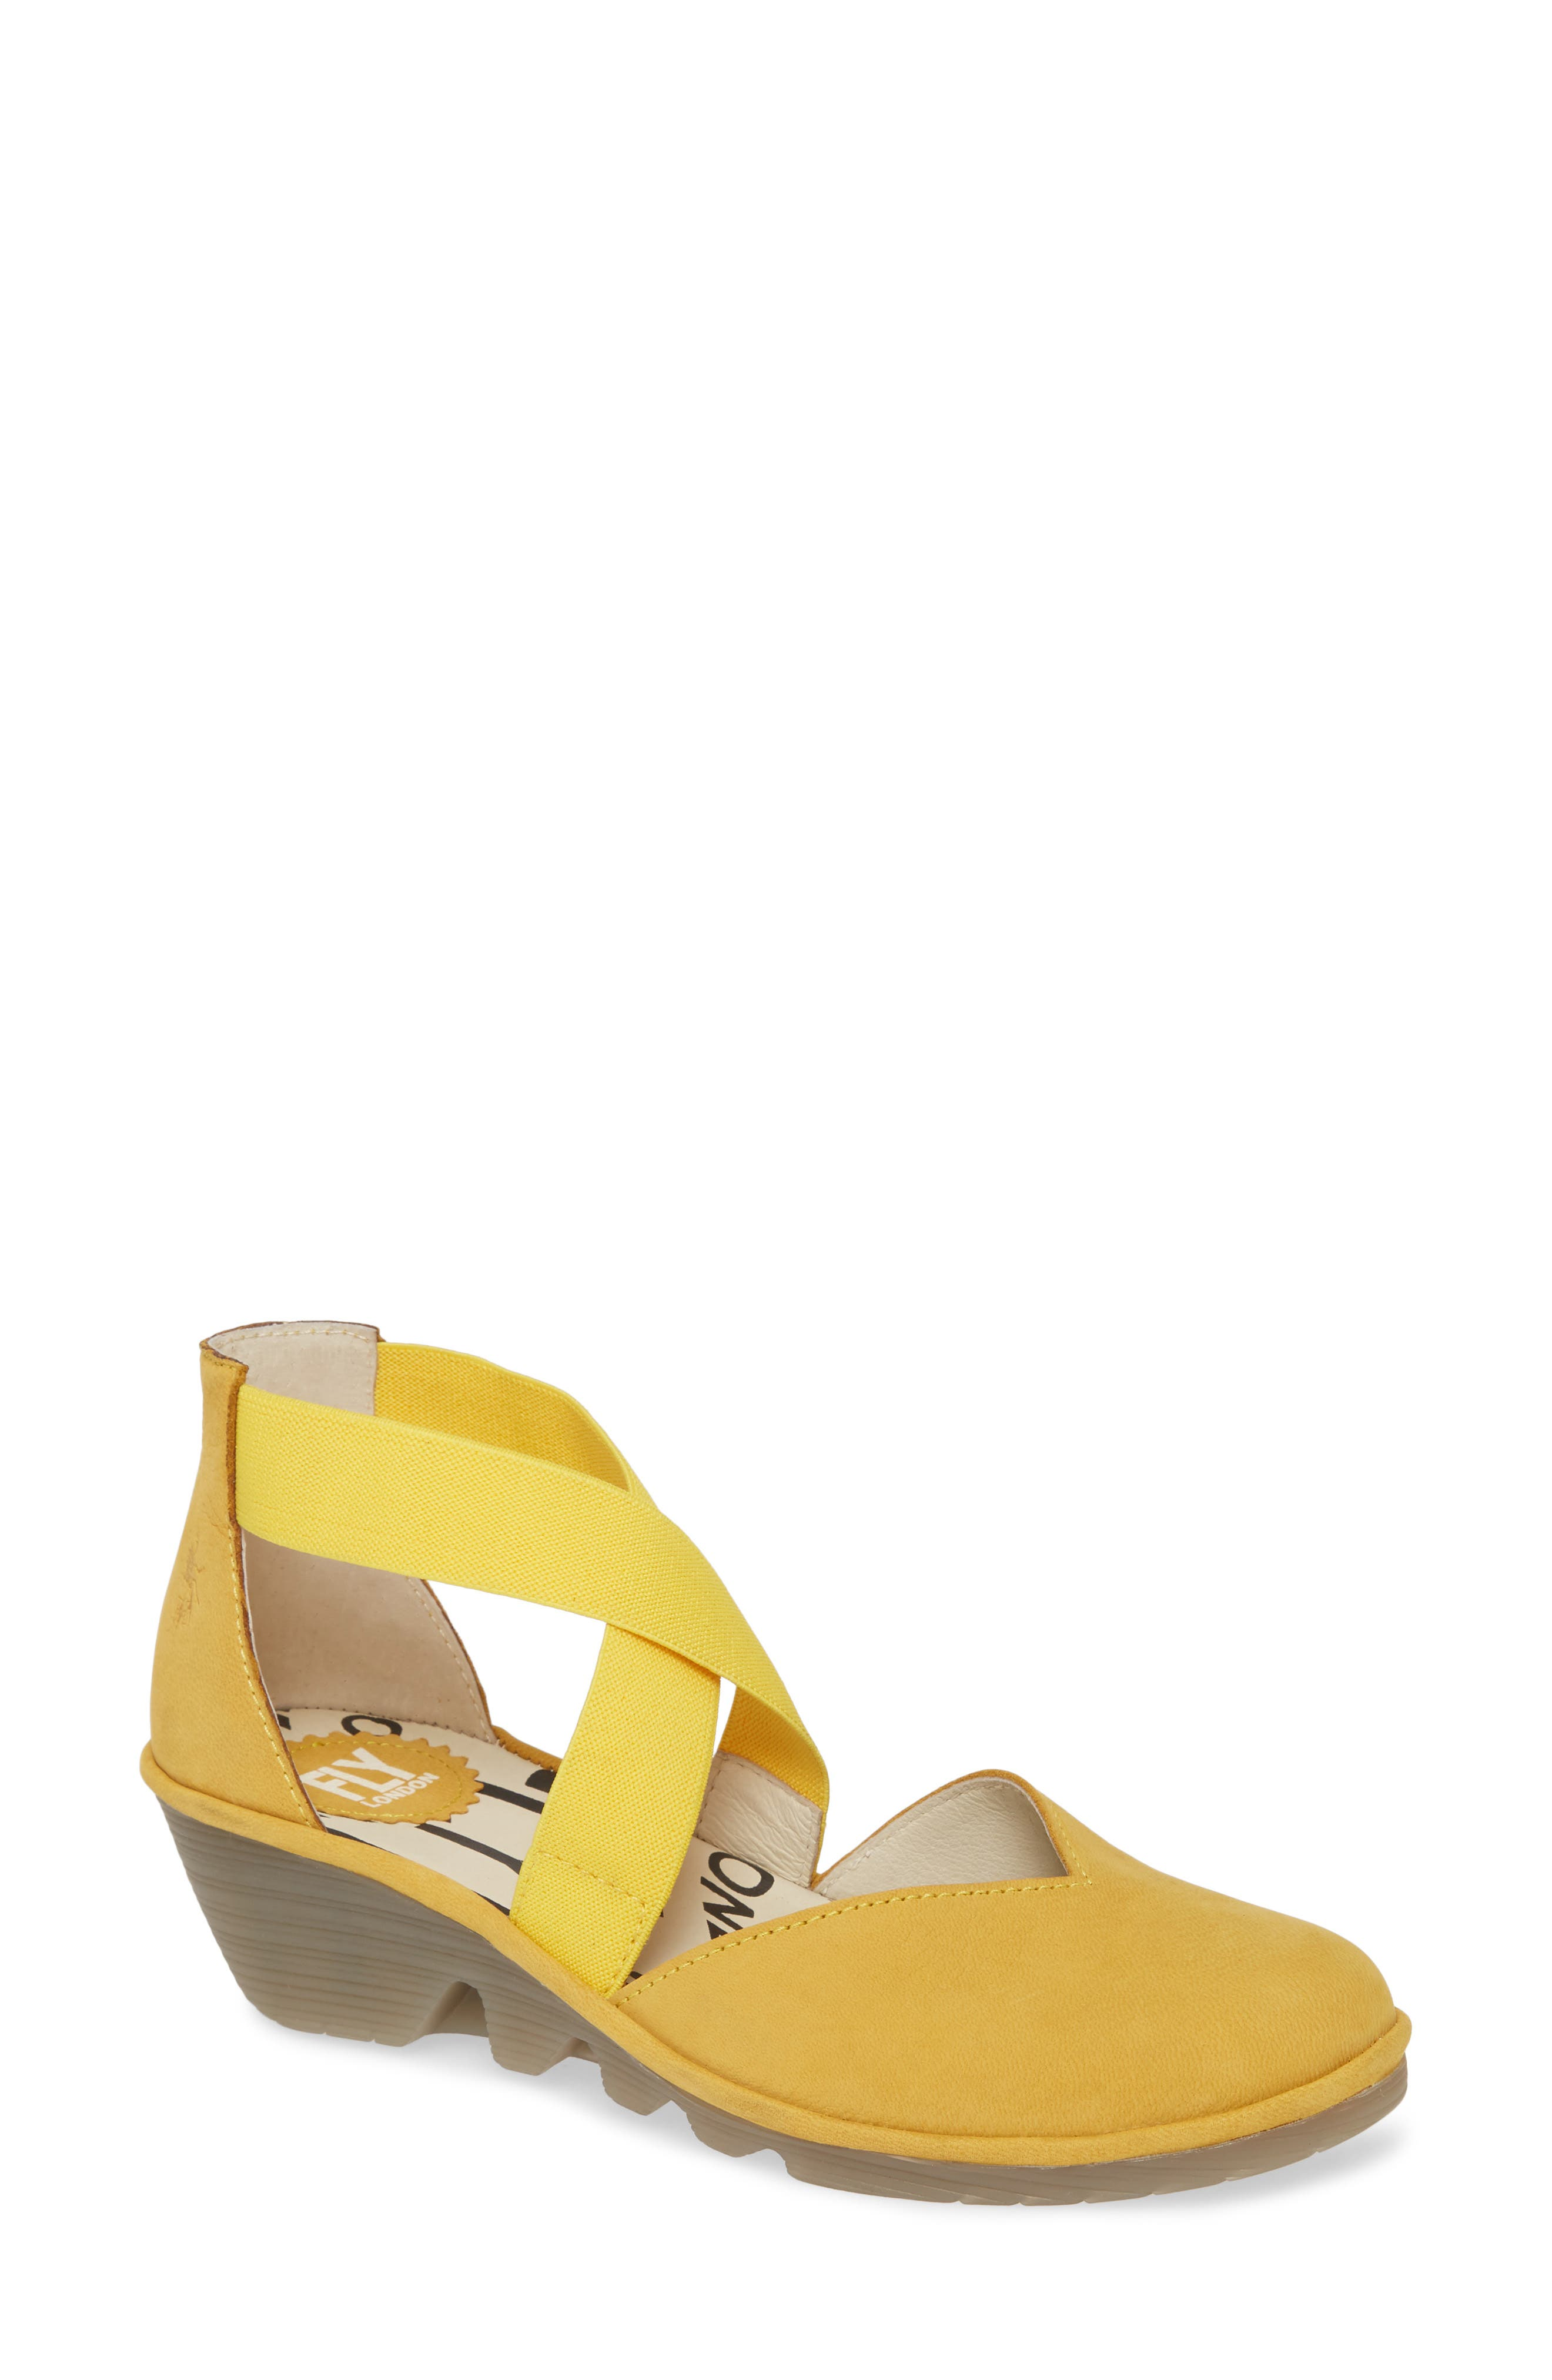 Criss-crossing elastic straps perfect the fit of a well-cushioned wedge grounded by a lightweight and flexible sole. Style Name: Fly London Paco Wedge (Women). Style Number: 5960920 1. Available in stores.